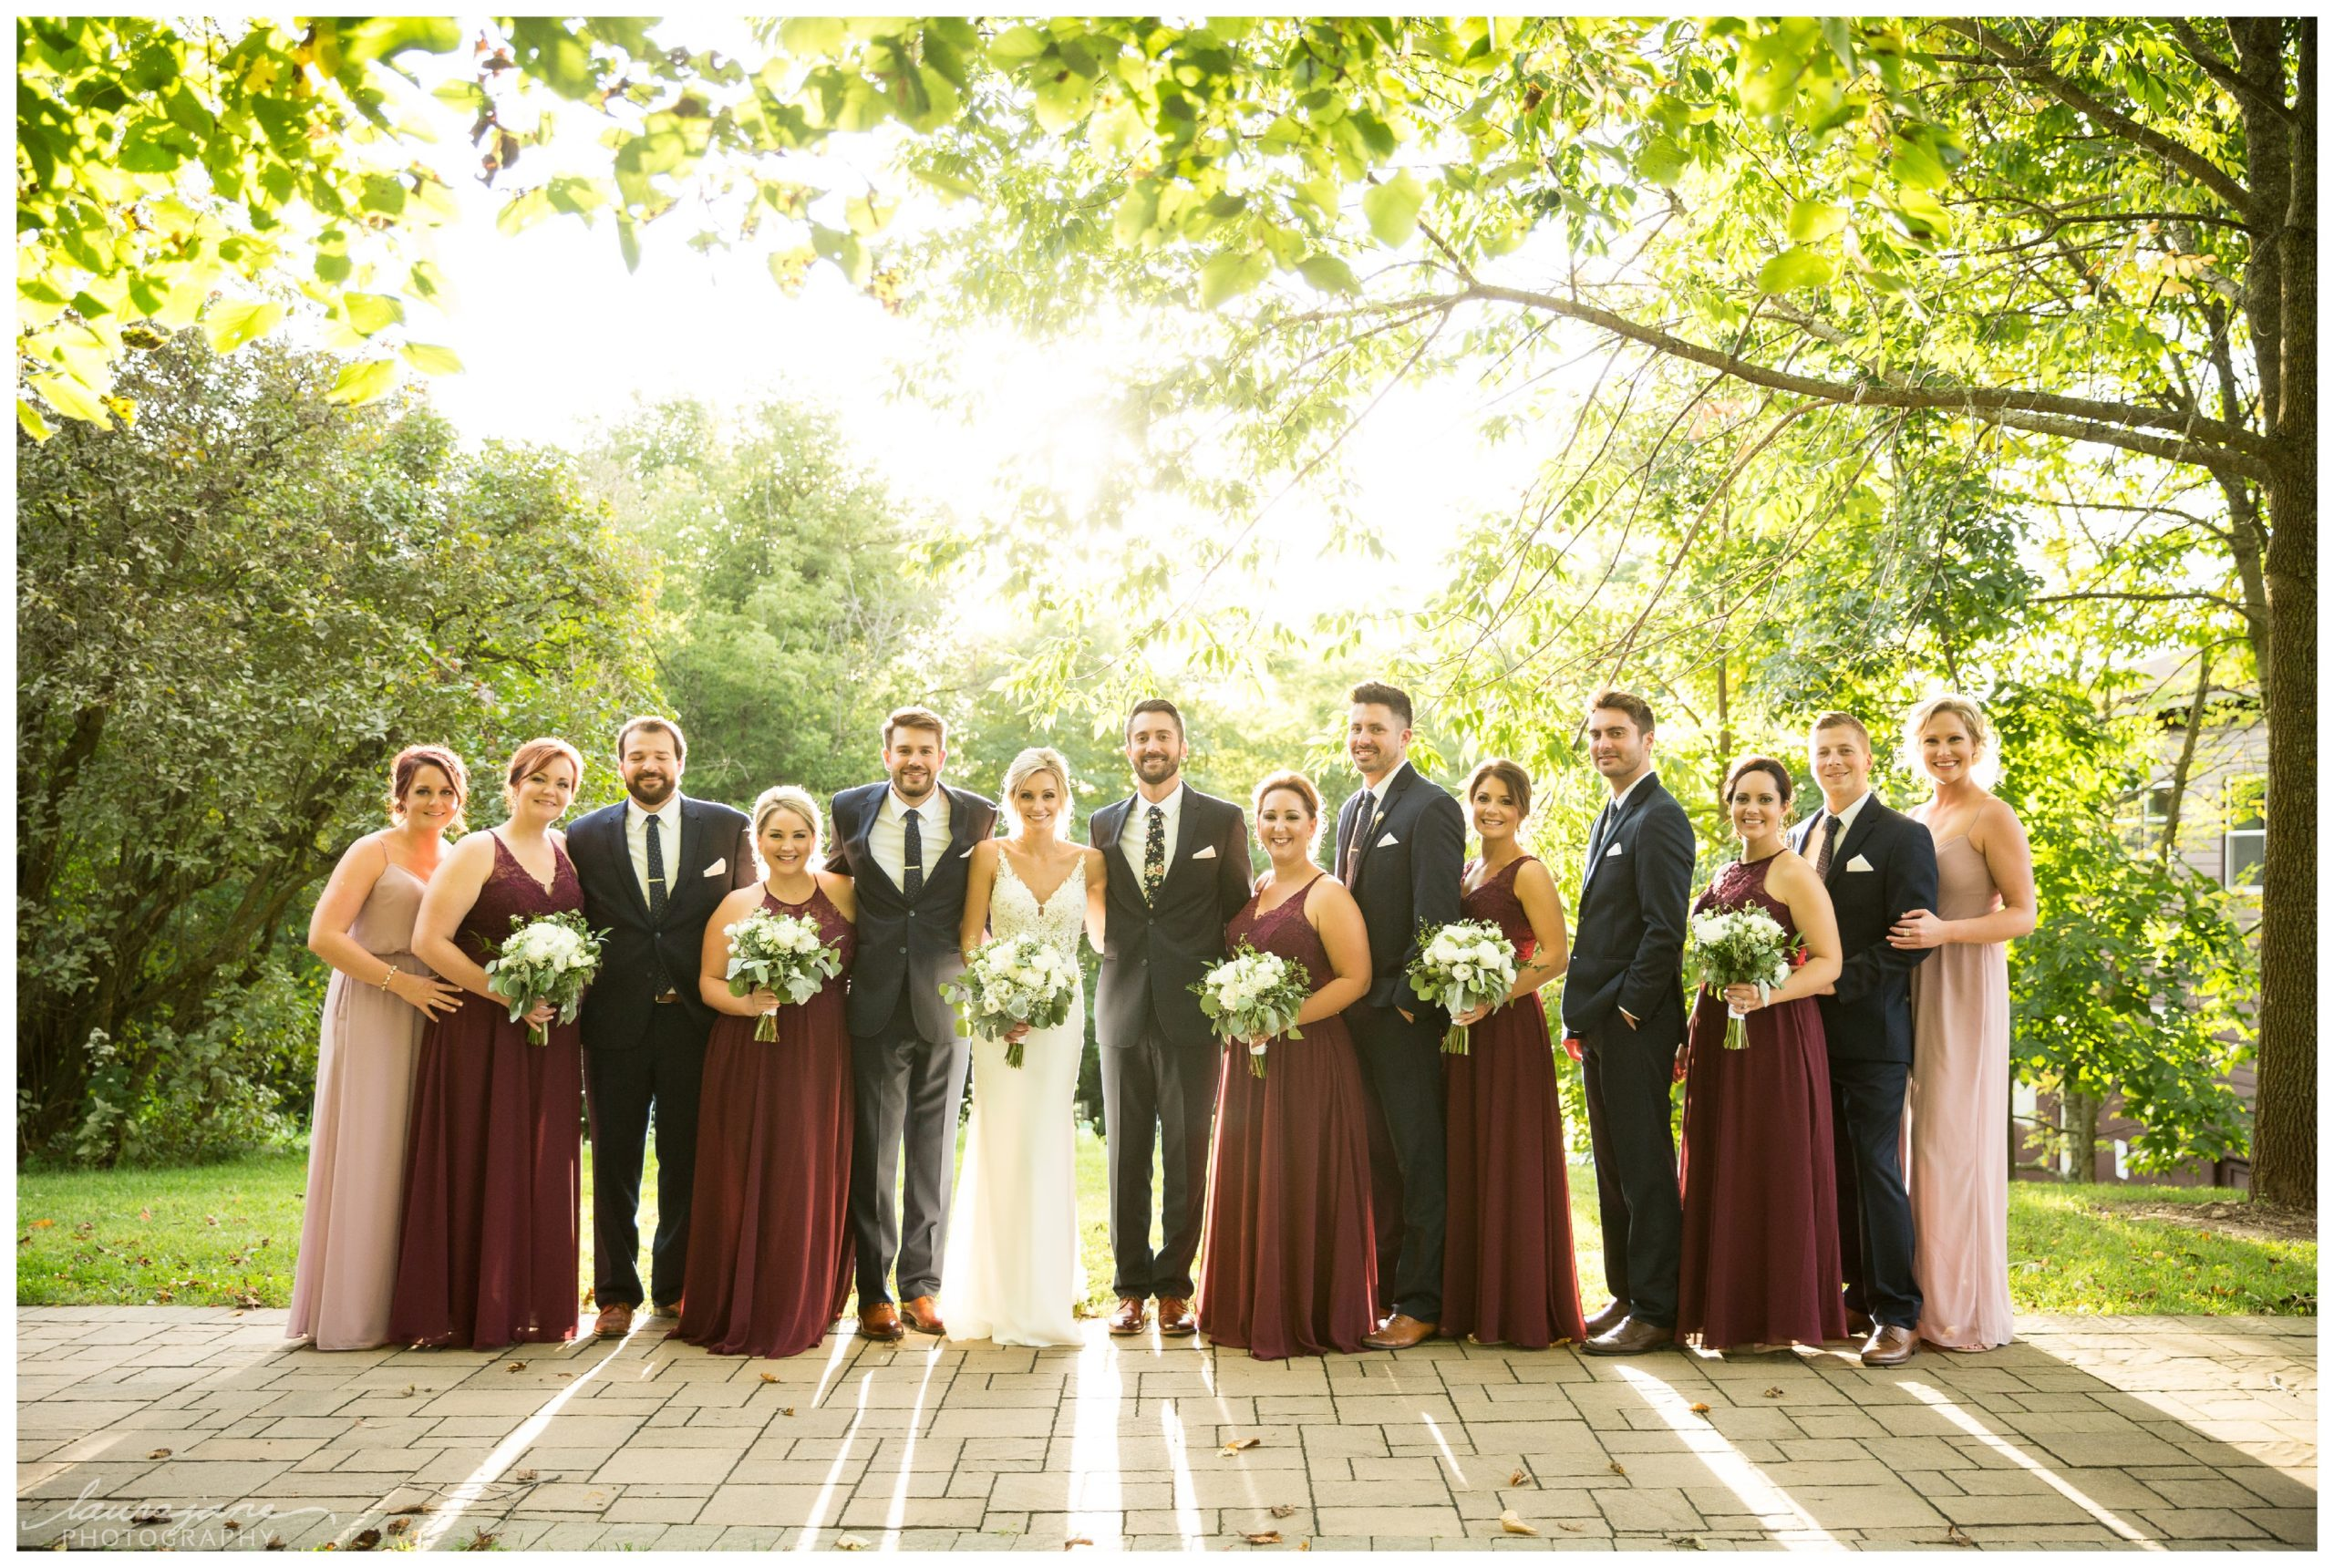 Bridal Party Portraits at Hubertus Wedding